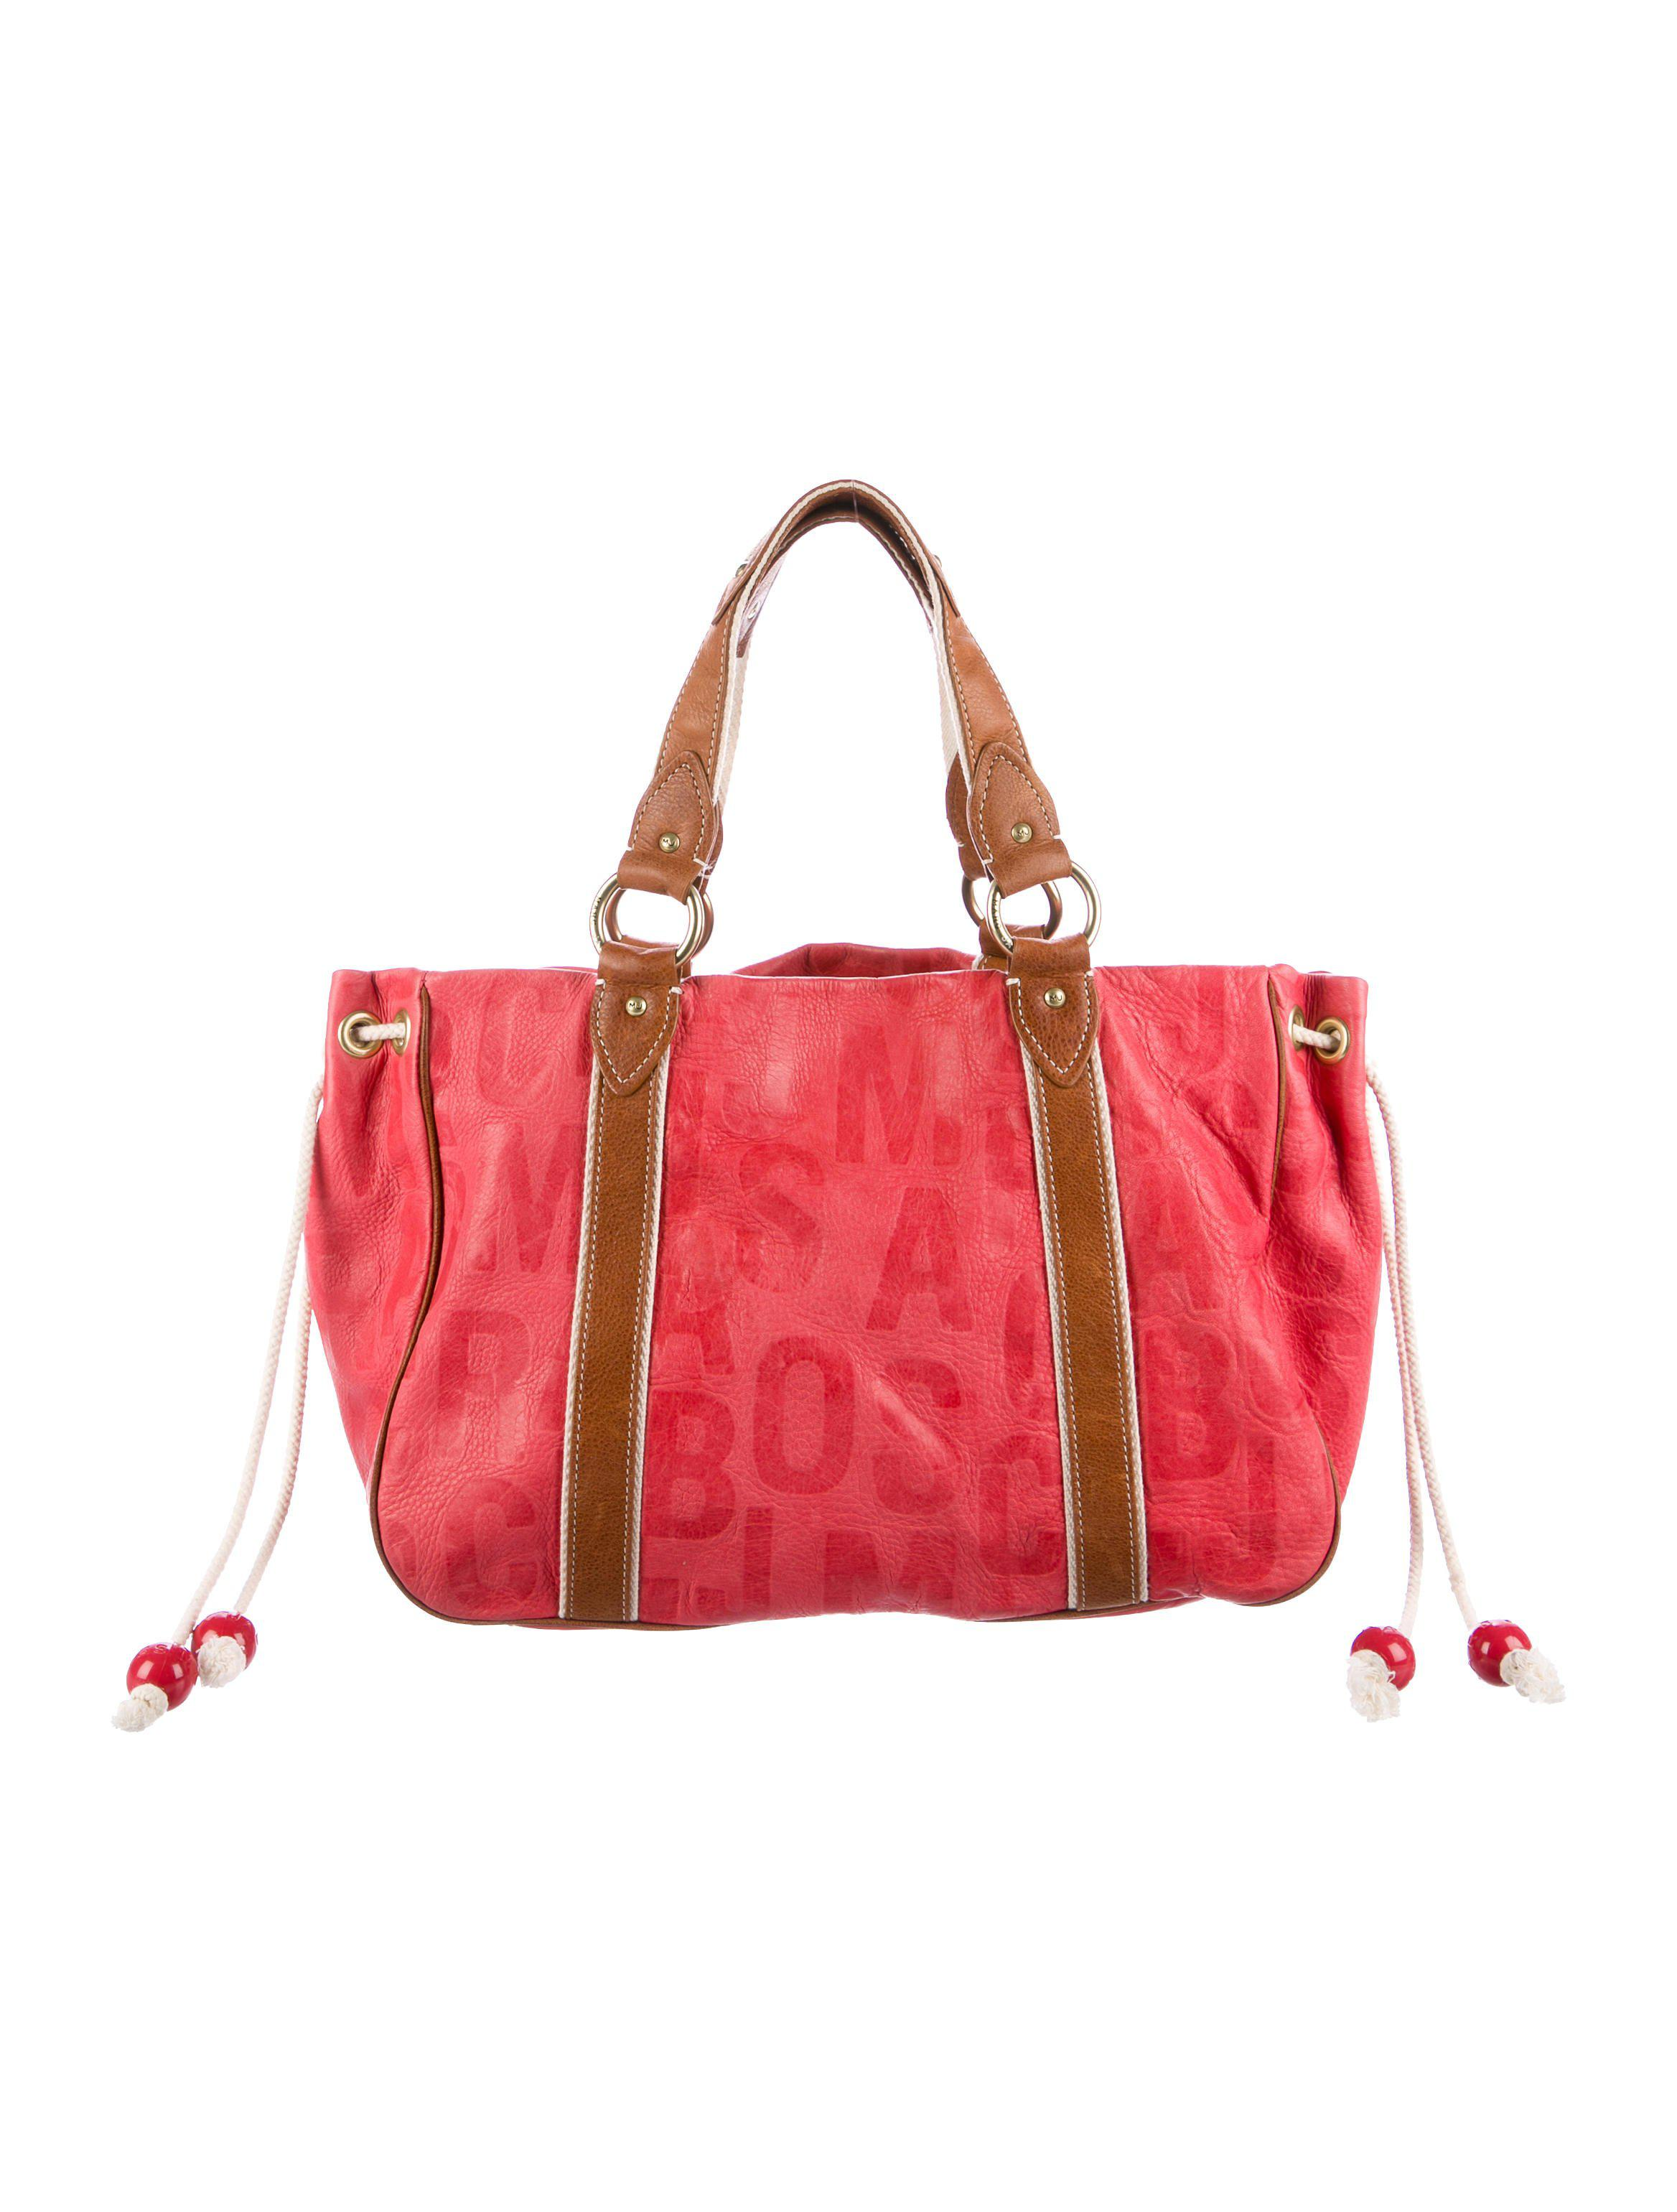 359eccc618e1 Lyst - Marc Jacobs Embossed Leather Canvas Trimmed Tote Bag Coral in ...